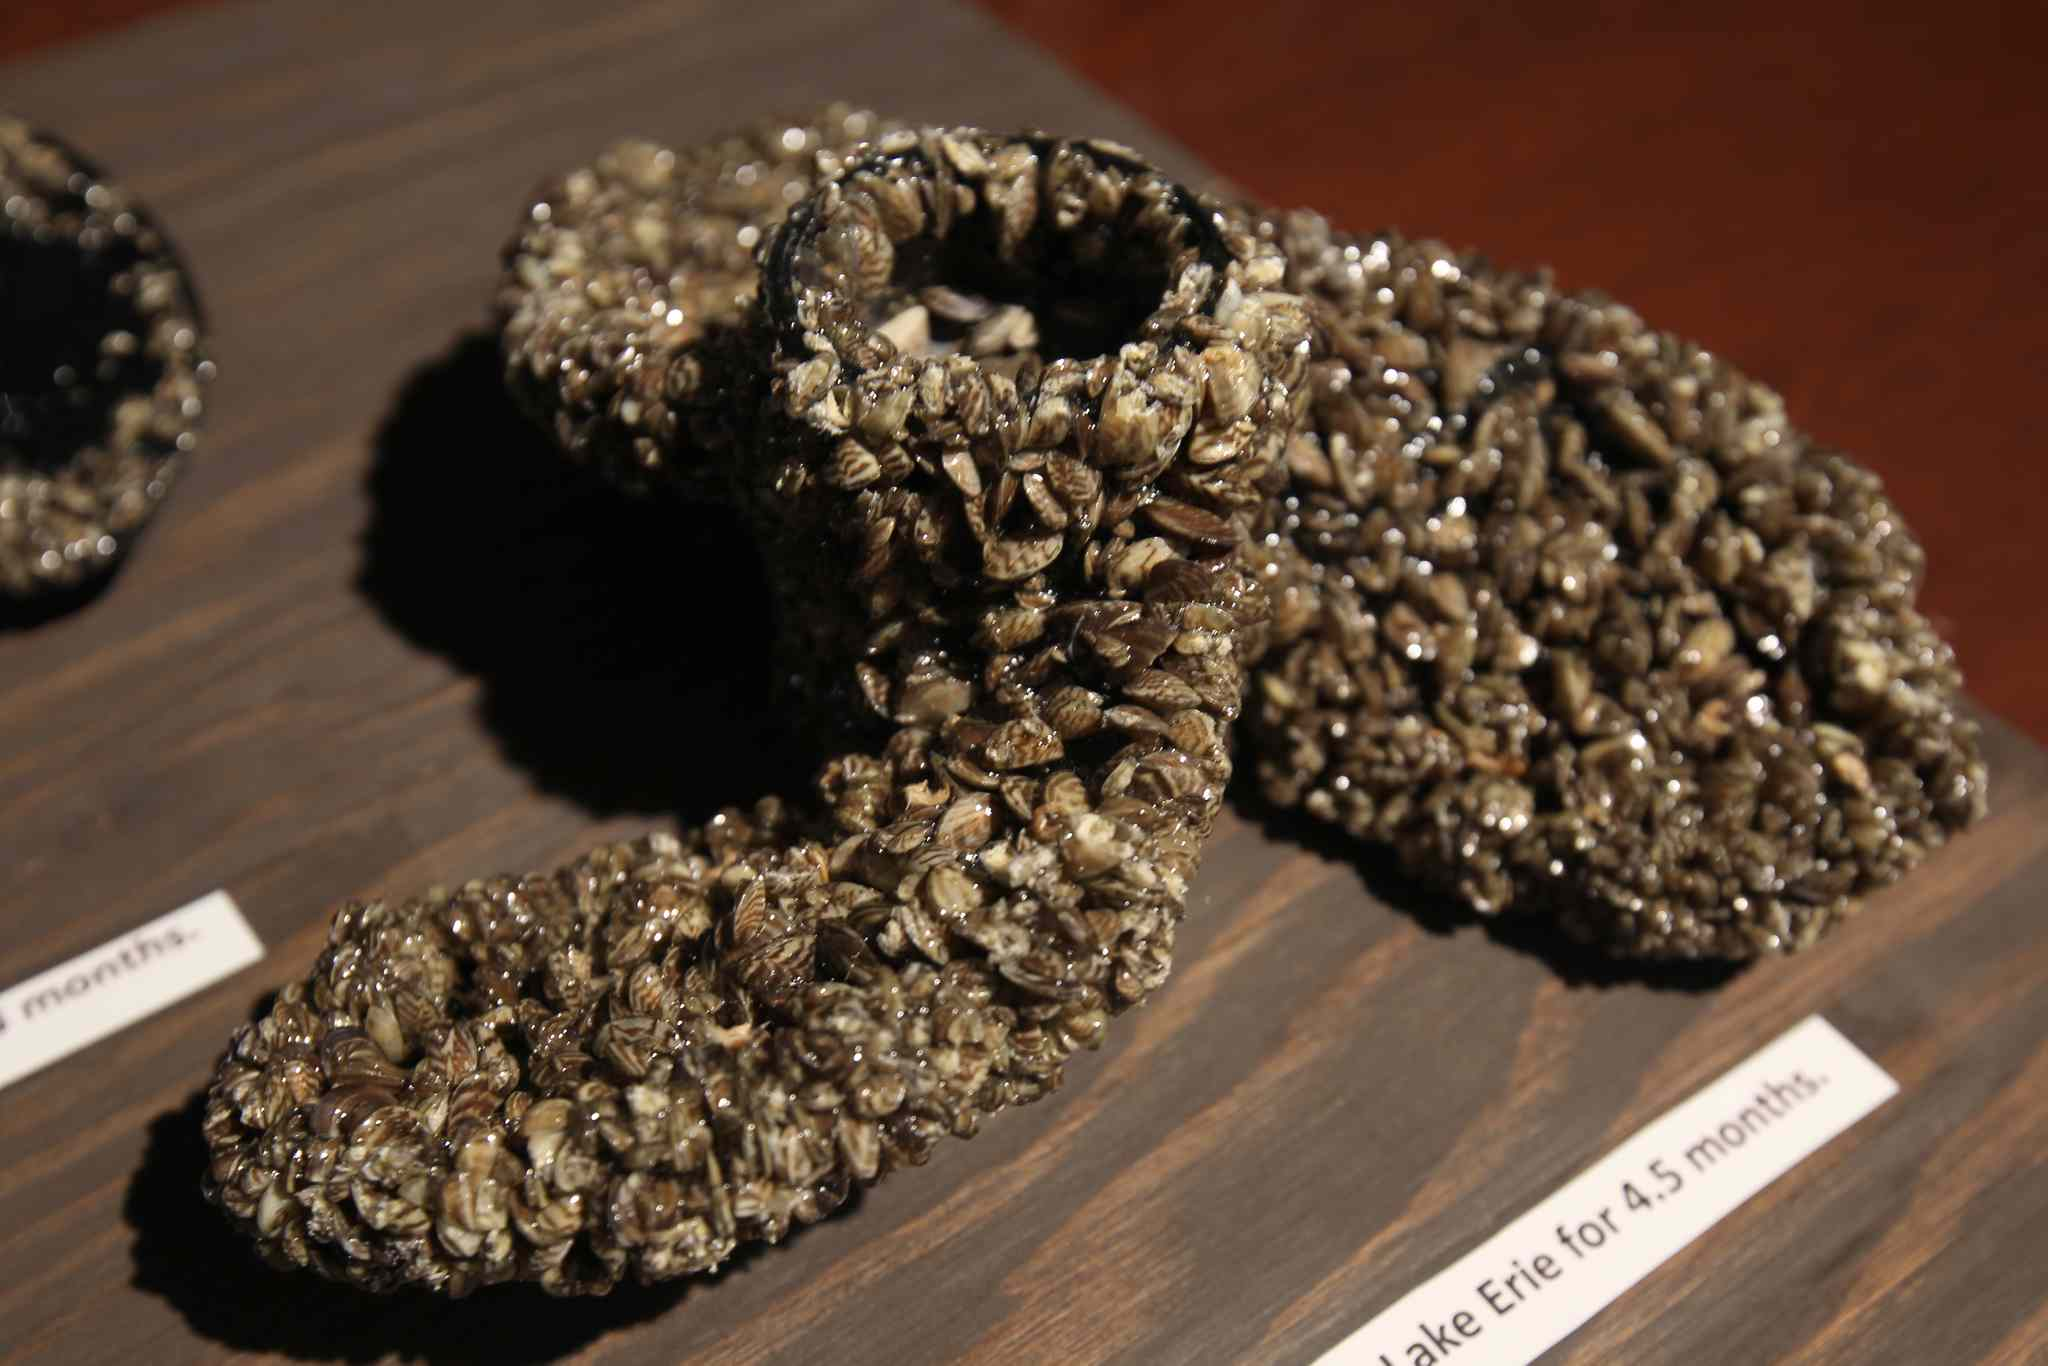 Conservation and Water Stewardship Minister Tom Nevakshonoff gives update on Zebra mussel fight in Manitoba at the Manitoba Legislature Thursday- A sample of boat propeller covered in zebra mussels from Lake Erie after being in the water for 4.5 months.